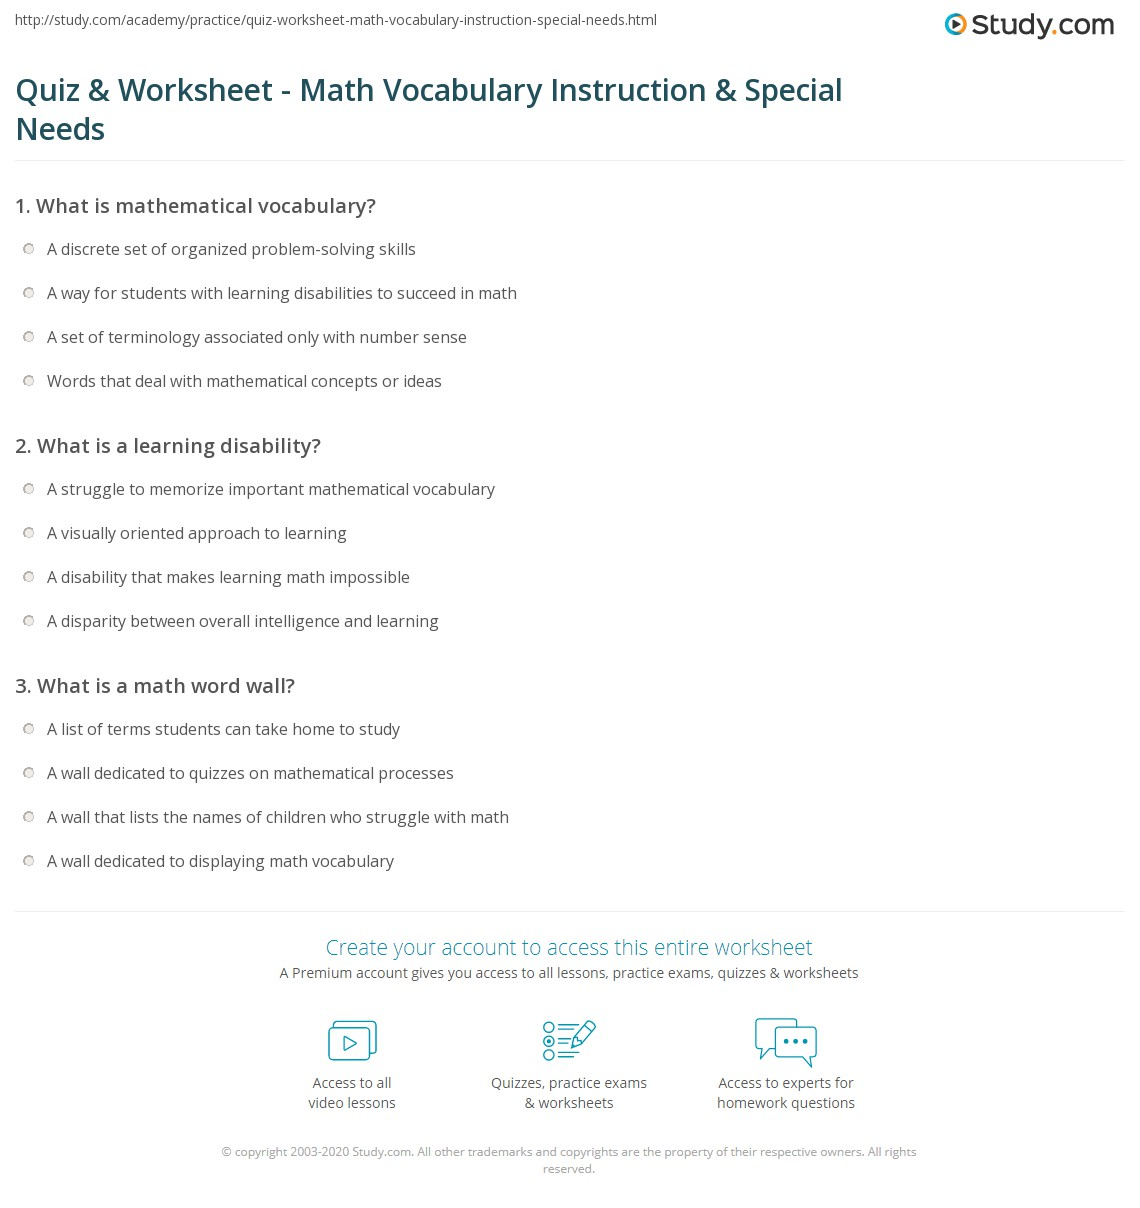 worksheet Math Vocabulary Worksheets quiz worksheet math vocabulary instruction special needs print teaching to students with learning disabilities worksheet